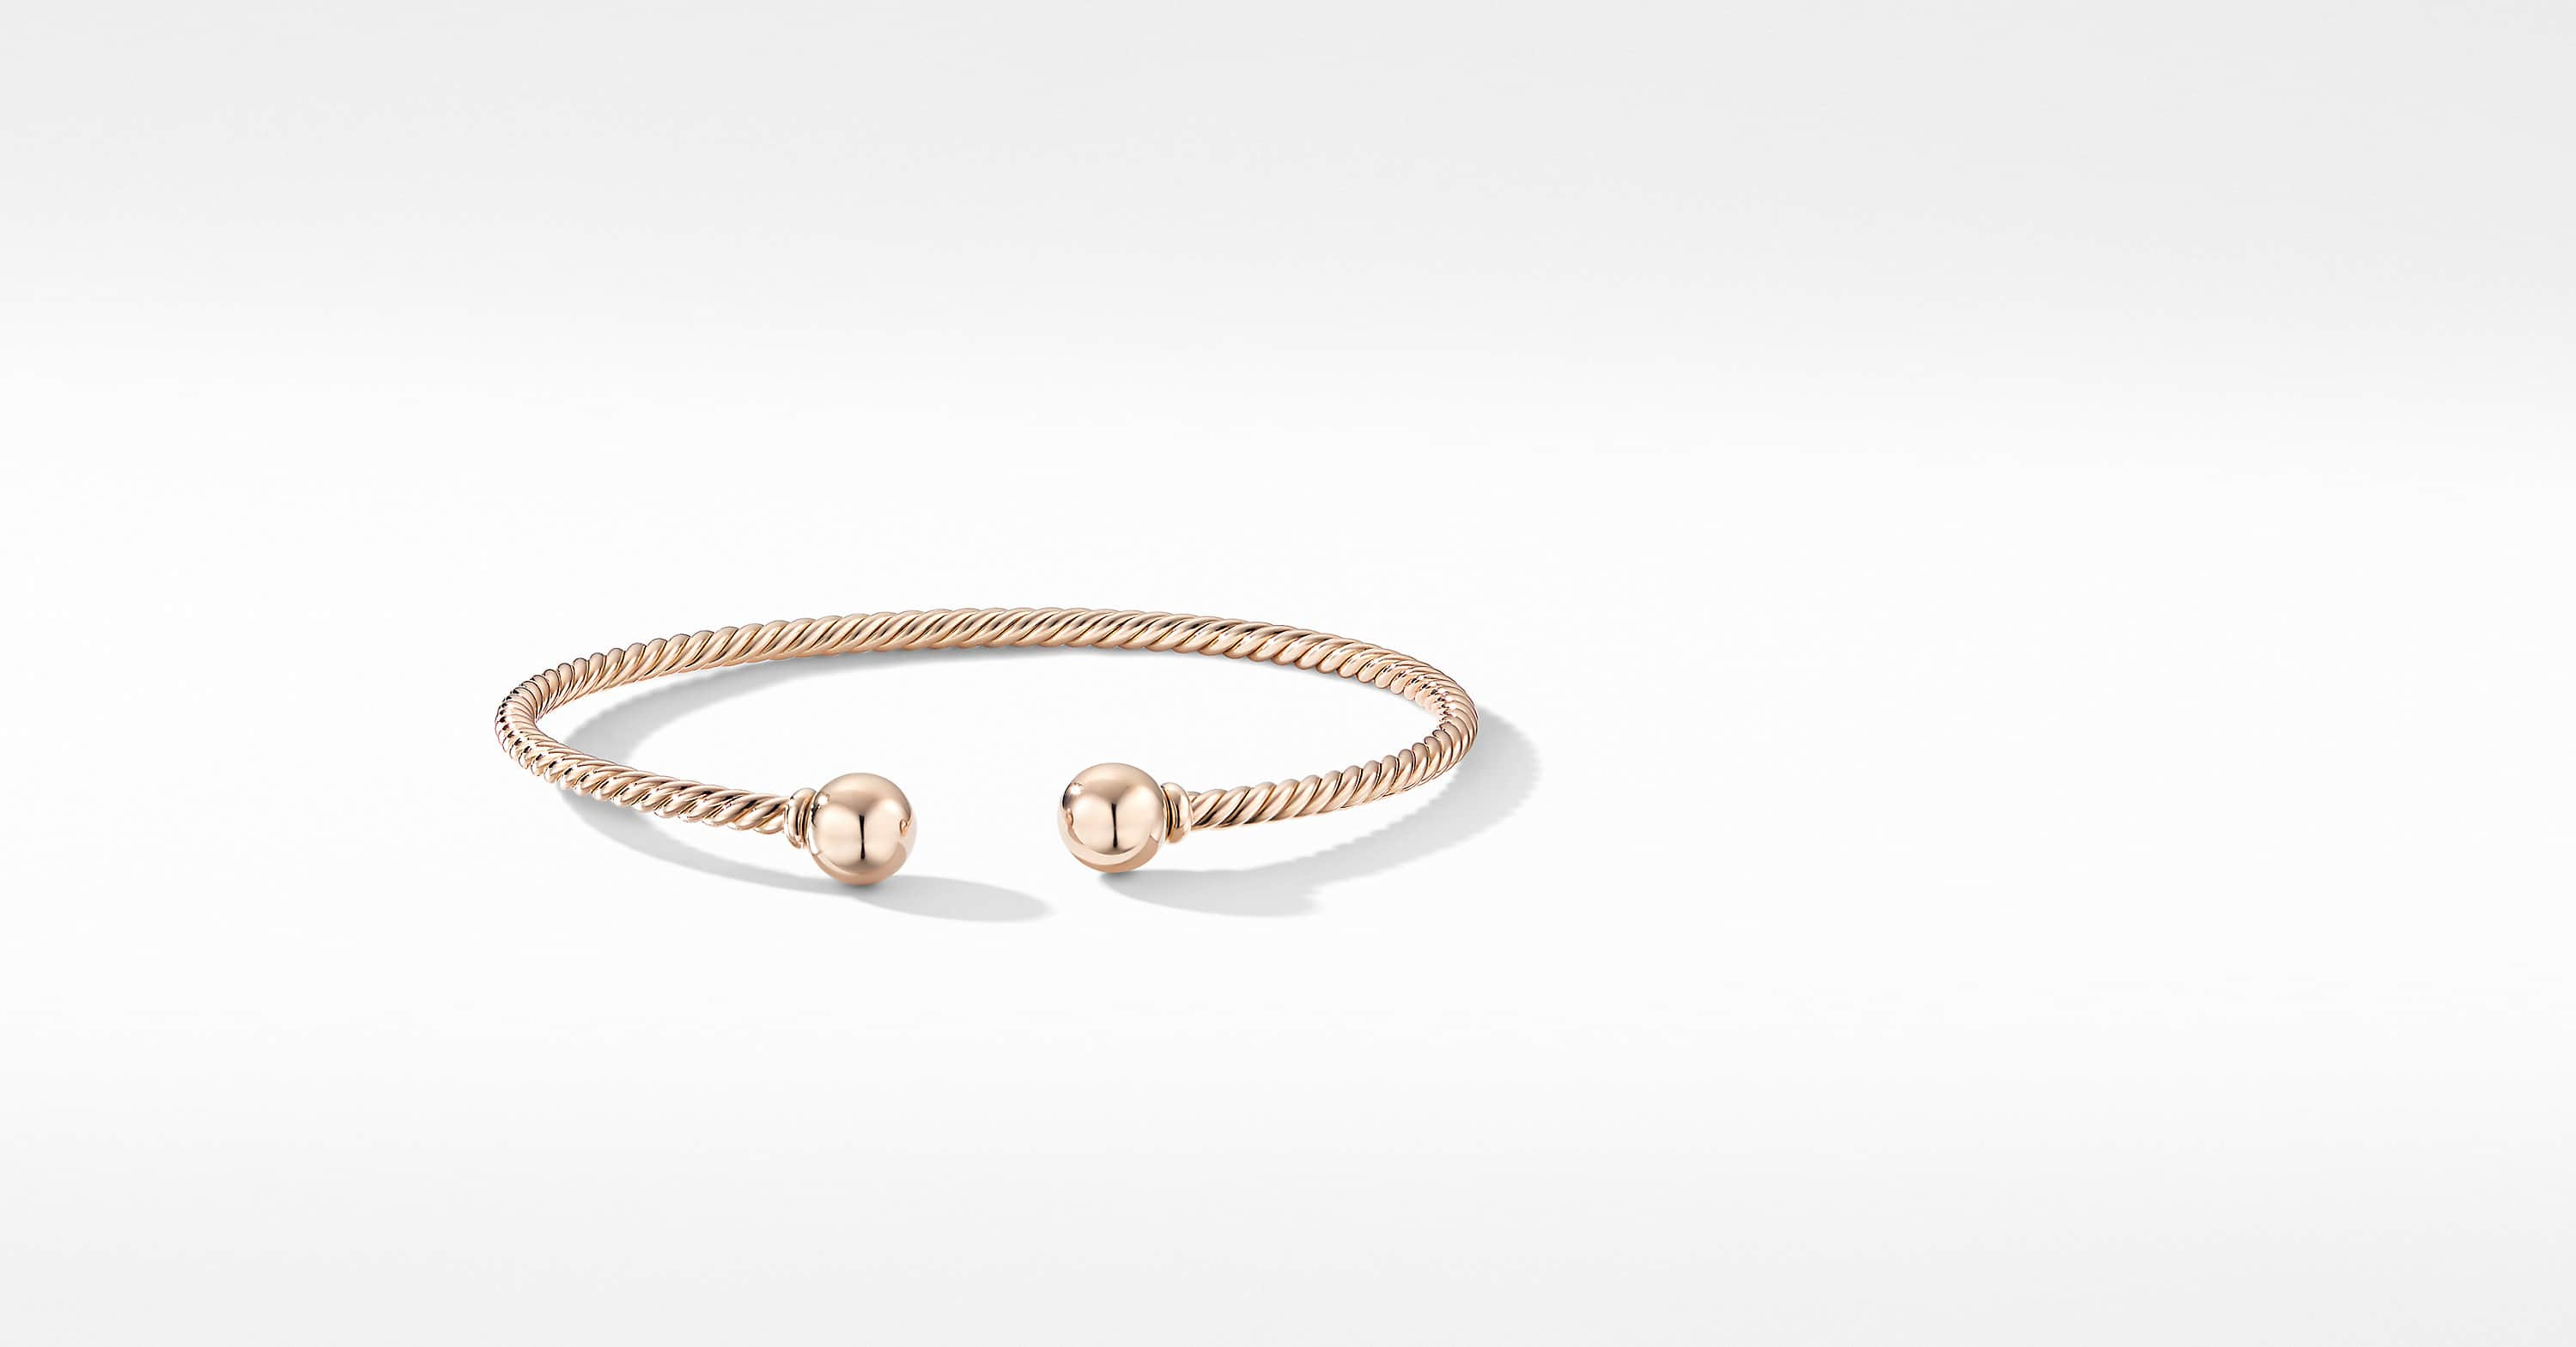 Solari Bracelet in 18K Rose Gold